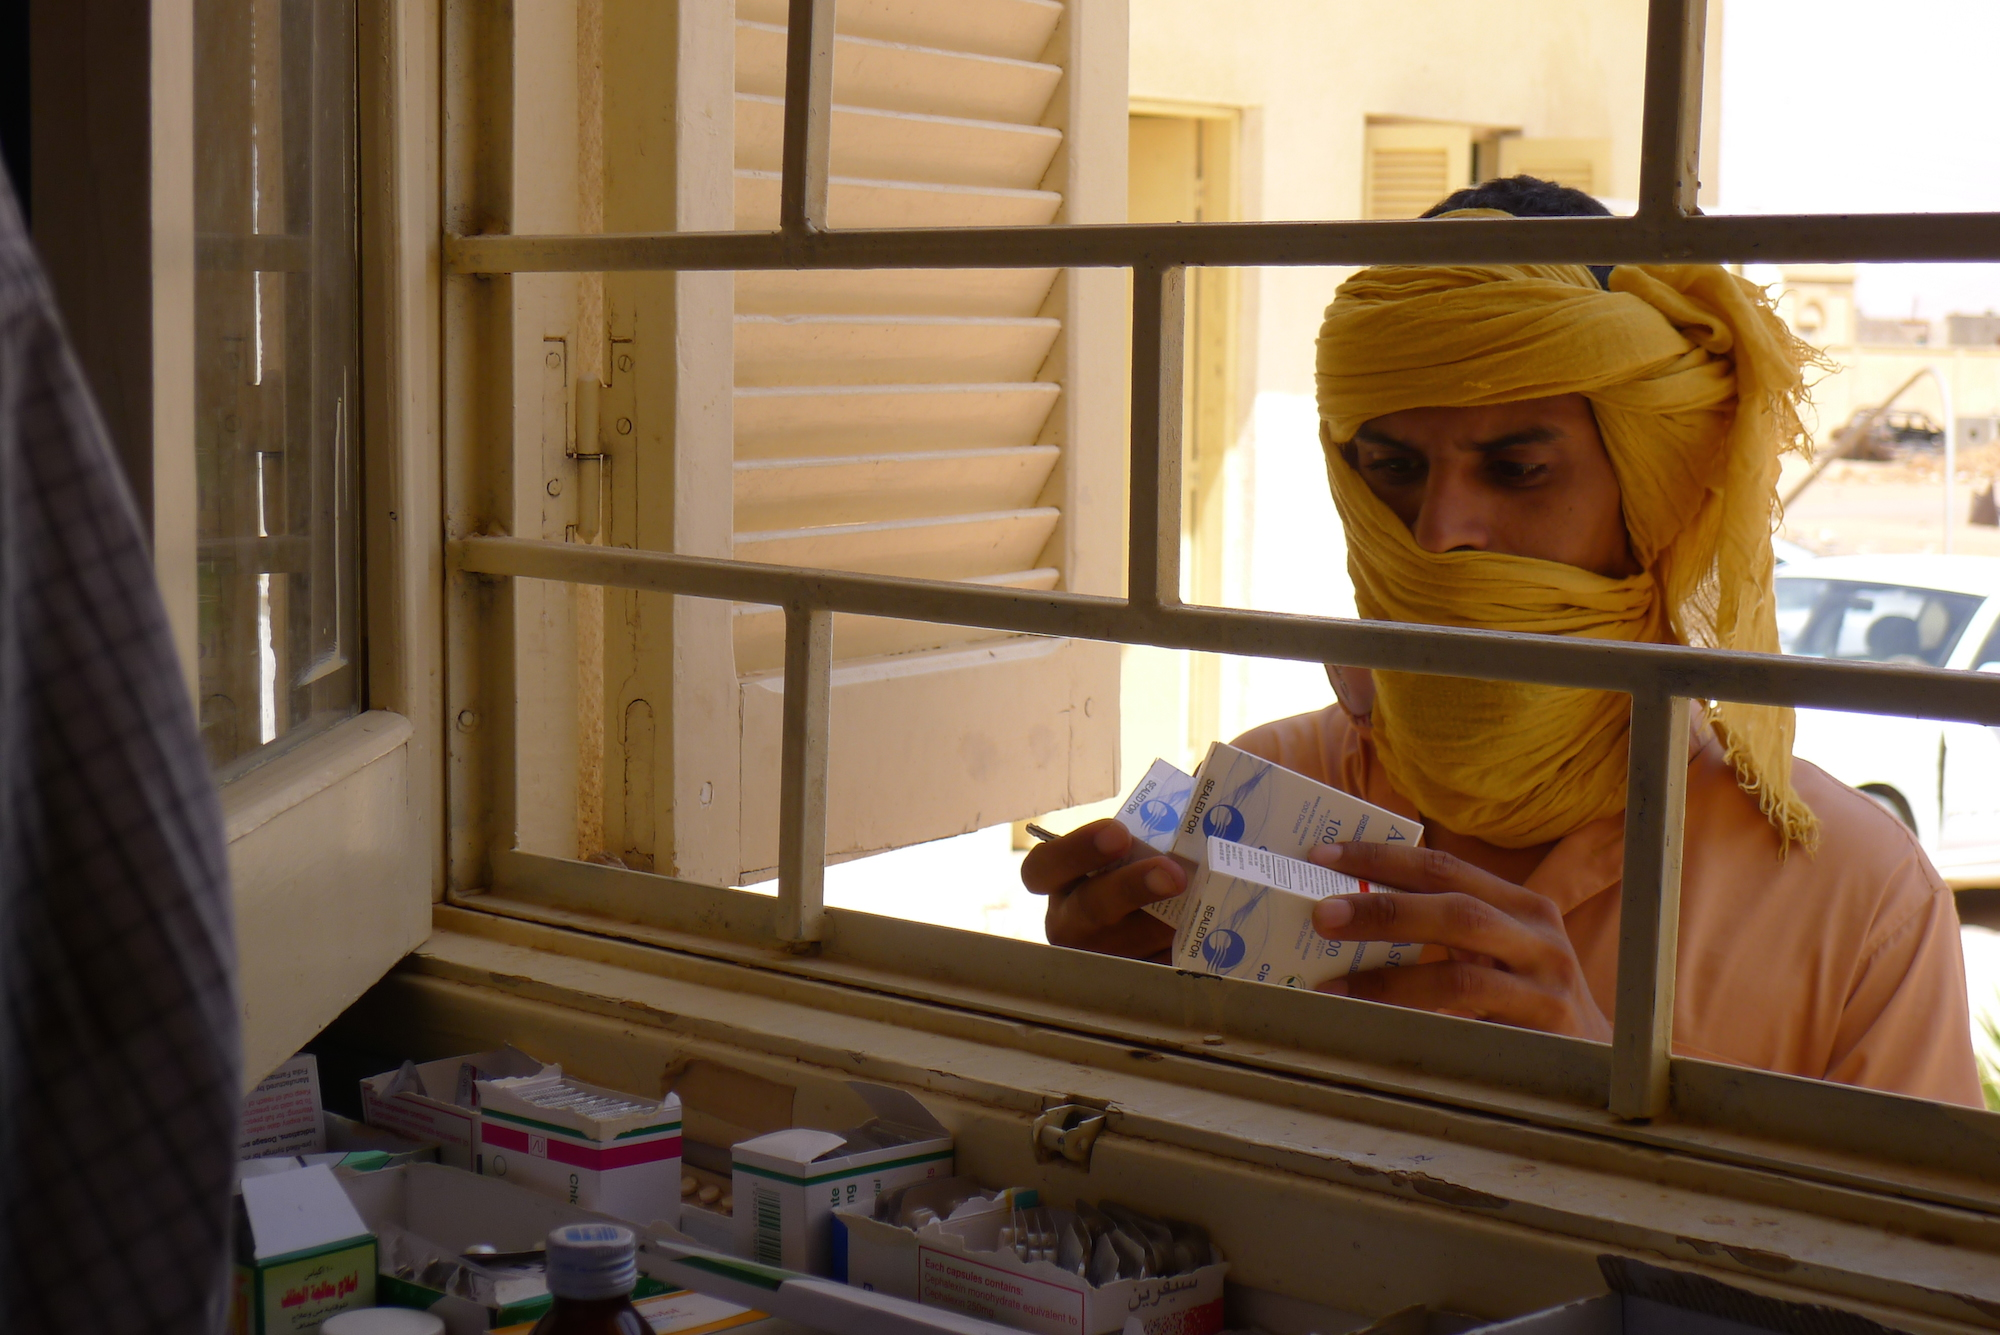 A Libyan man receives medication from the only pharmacy in Ubari, a town in southern Libya